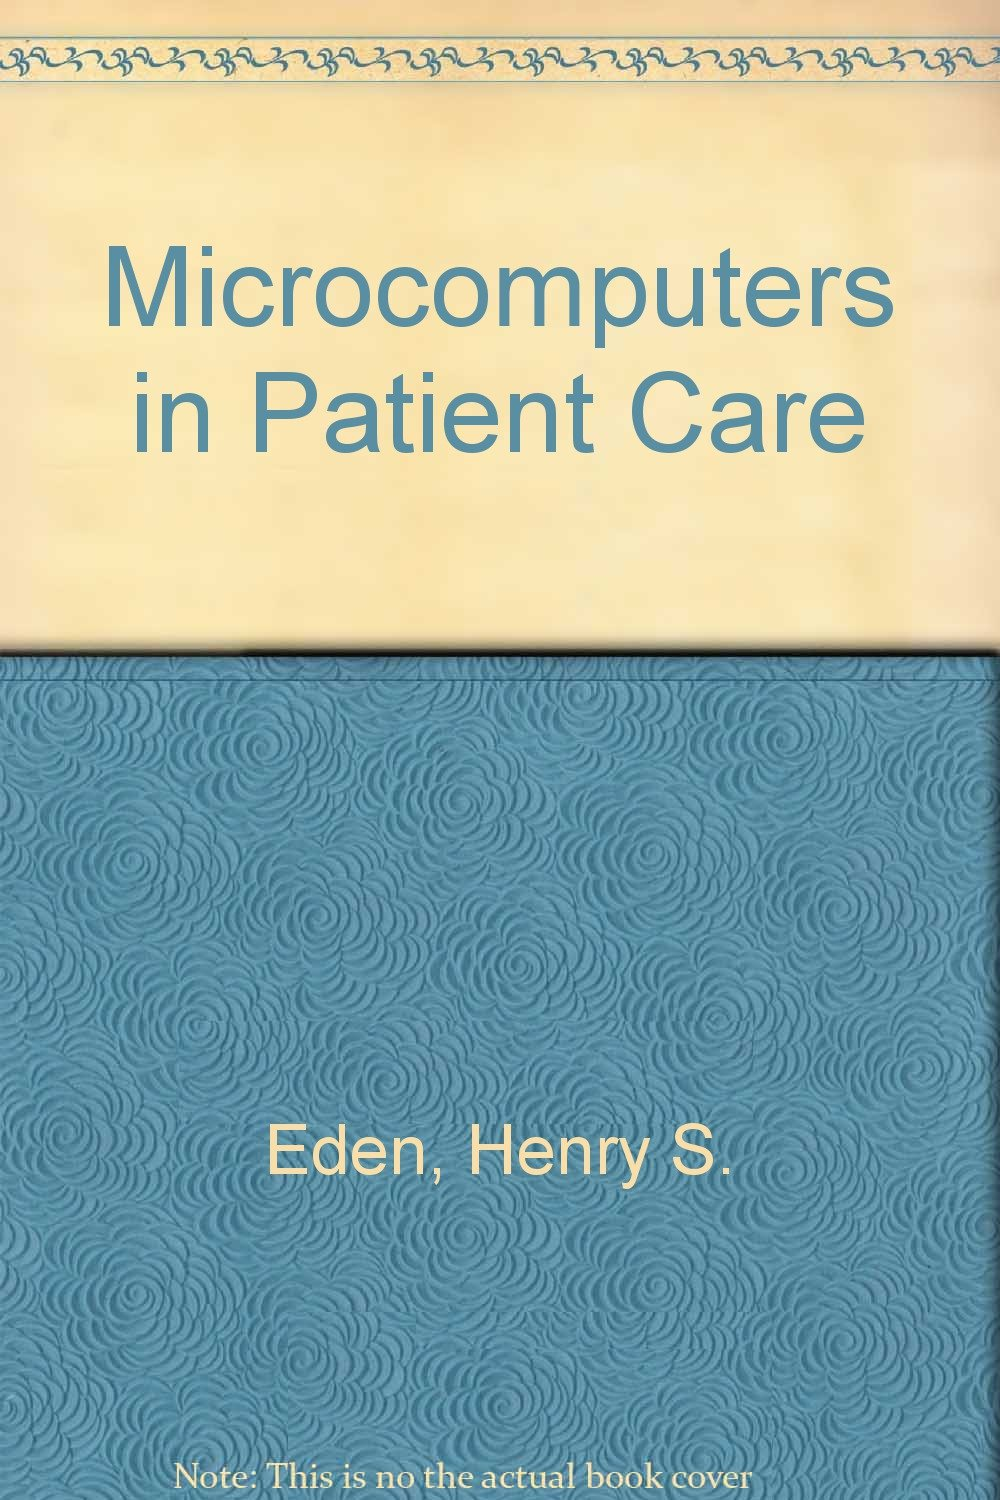 Microcomputers in Patient Care